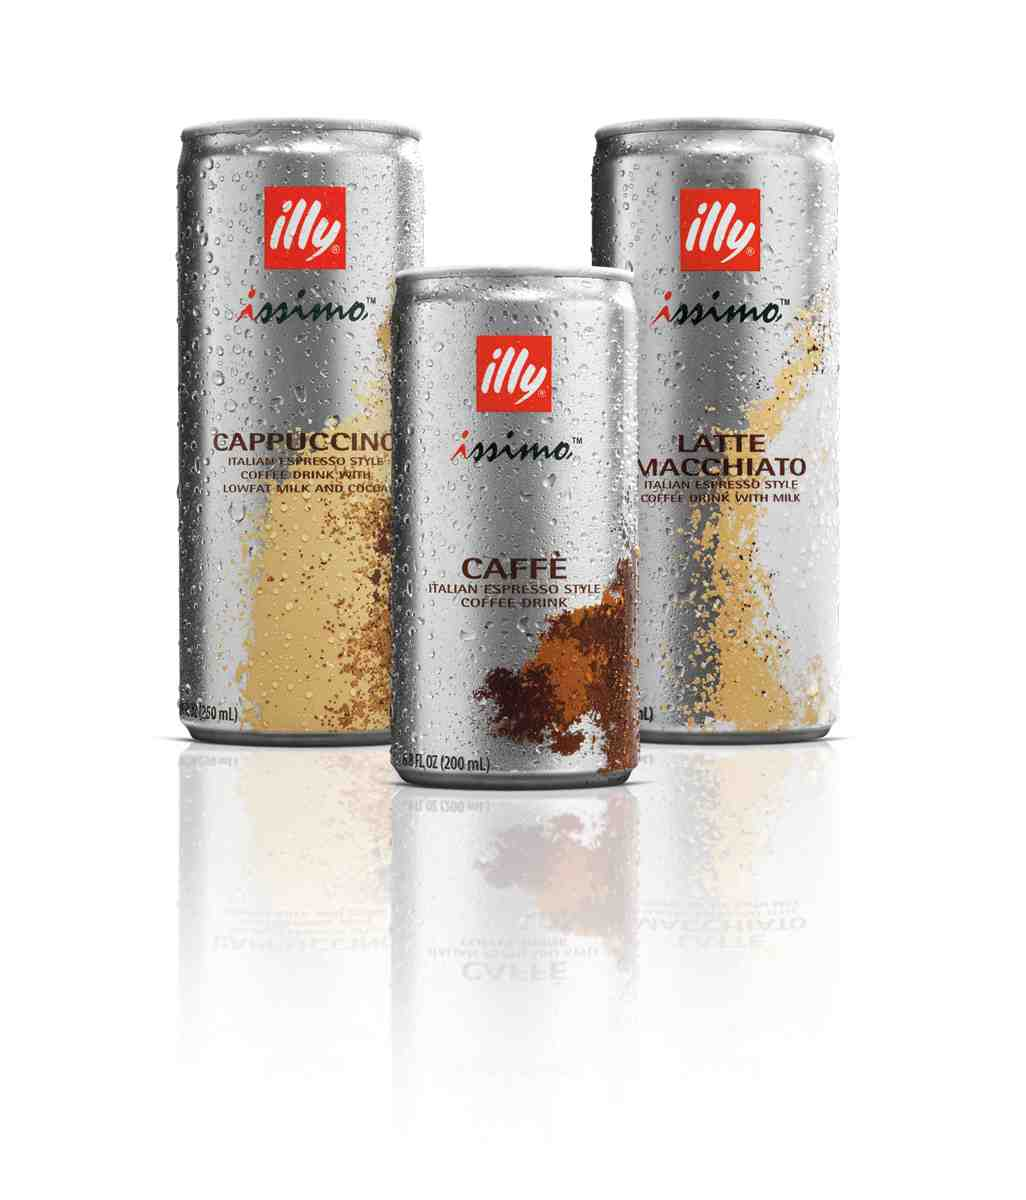 Illy issimo new drinks